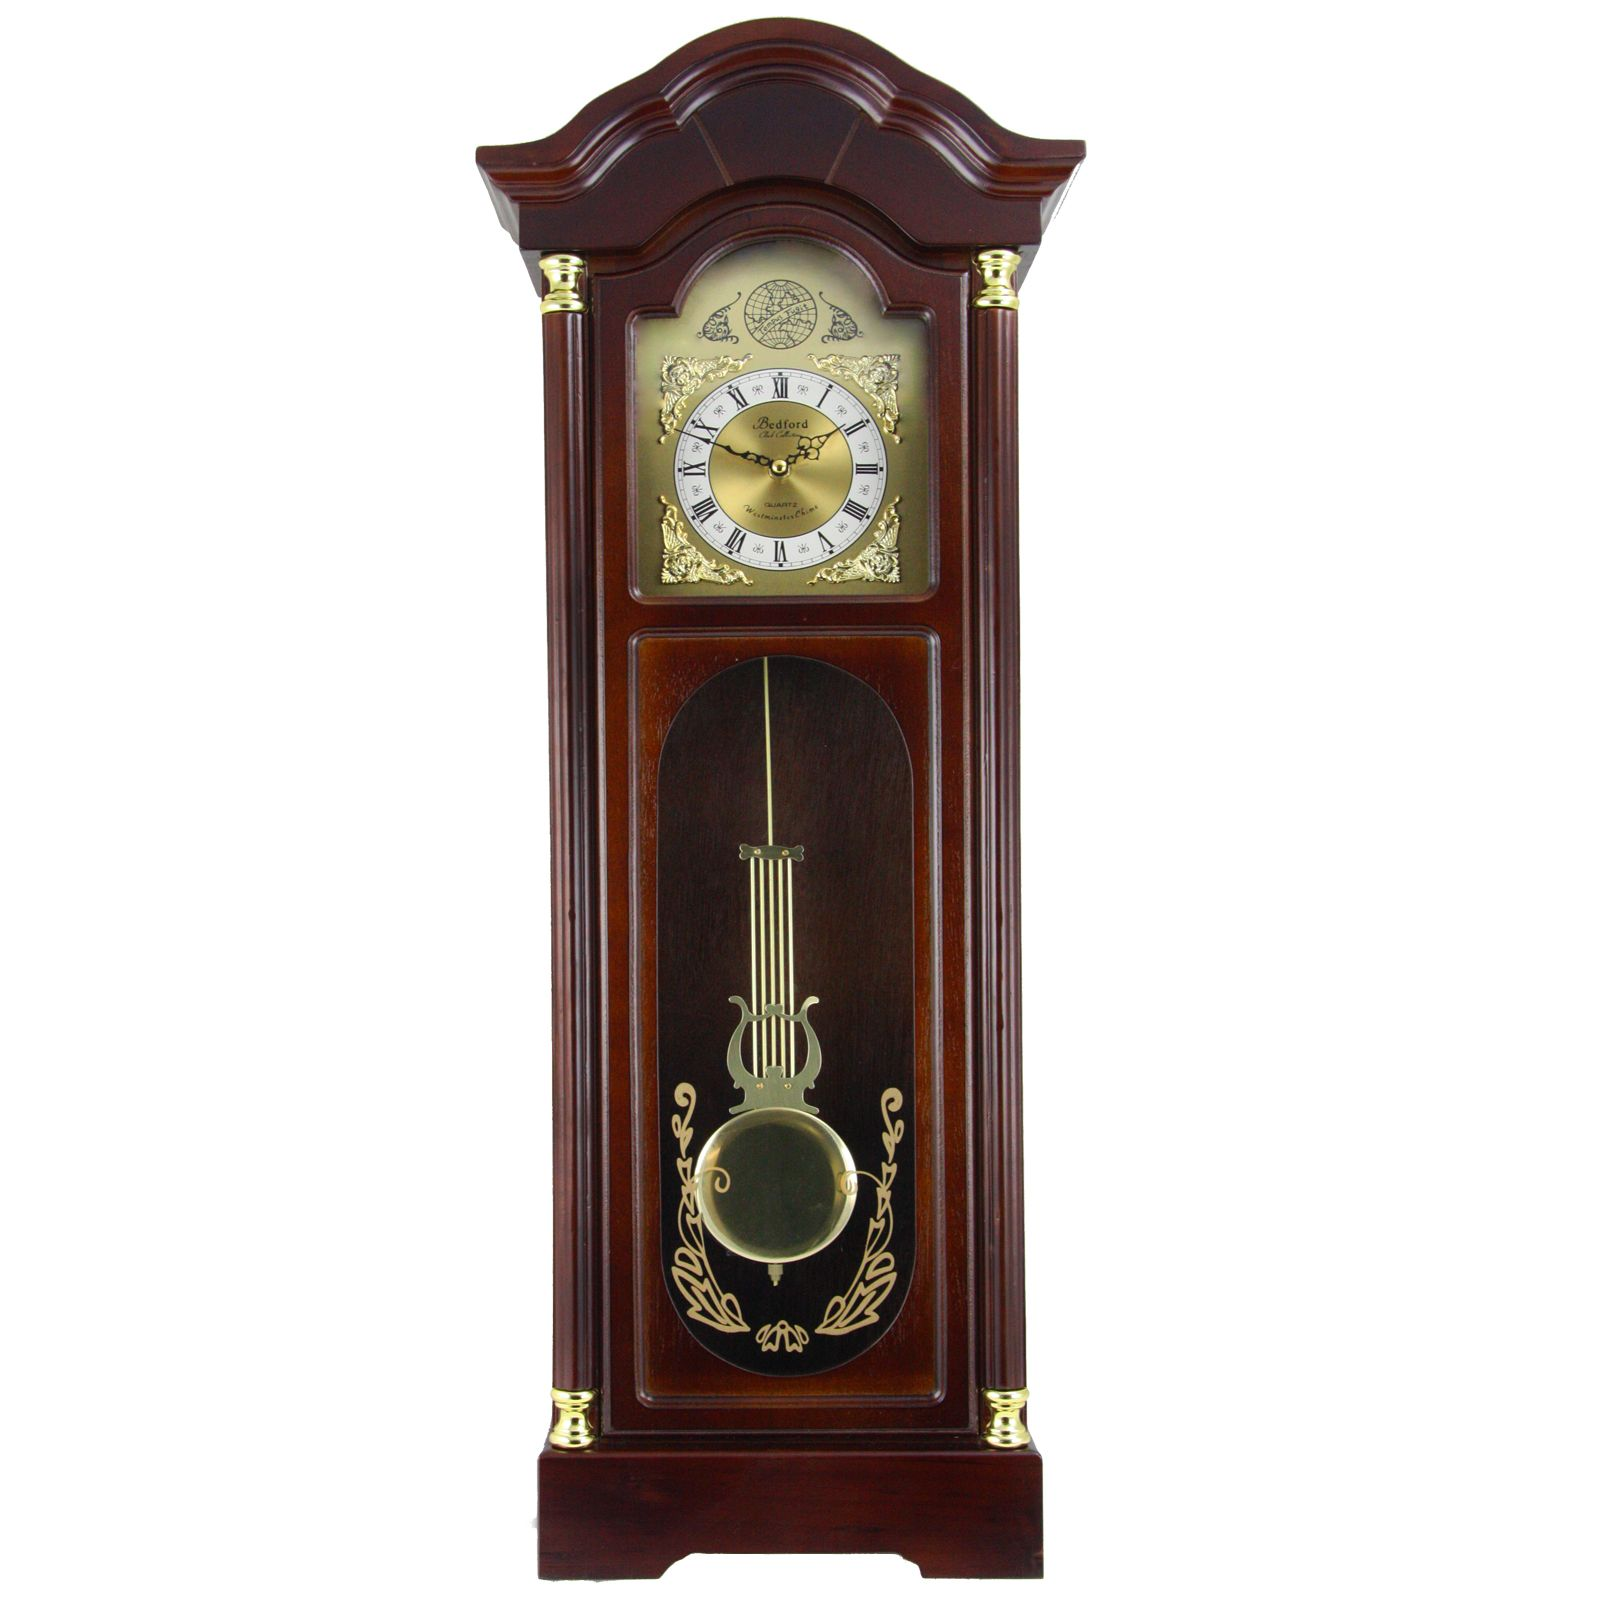 Bedford Clock Collection Offers You The Elegance And Beauty Of Classic Style With The Modern Reliable Technology Of Today In 2020 Chiming Wall Clocks Wall Clock Clock